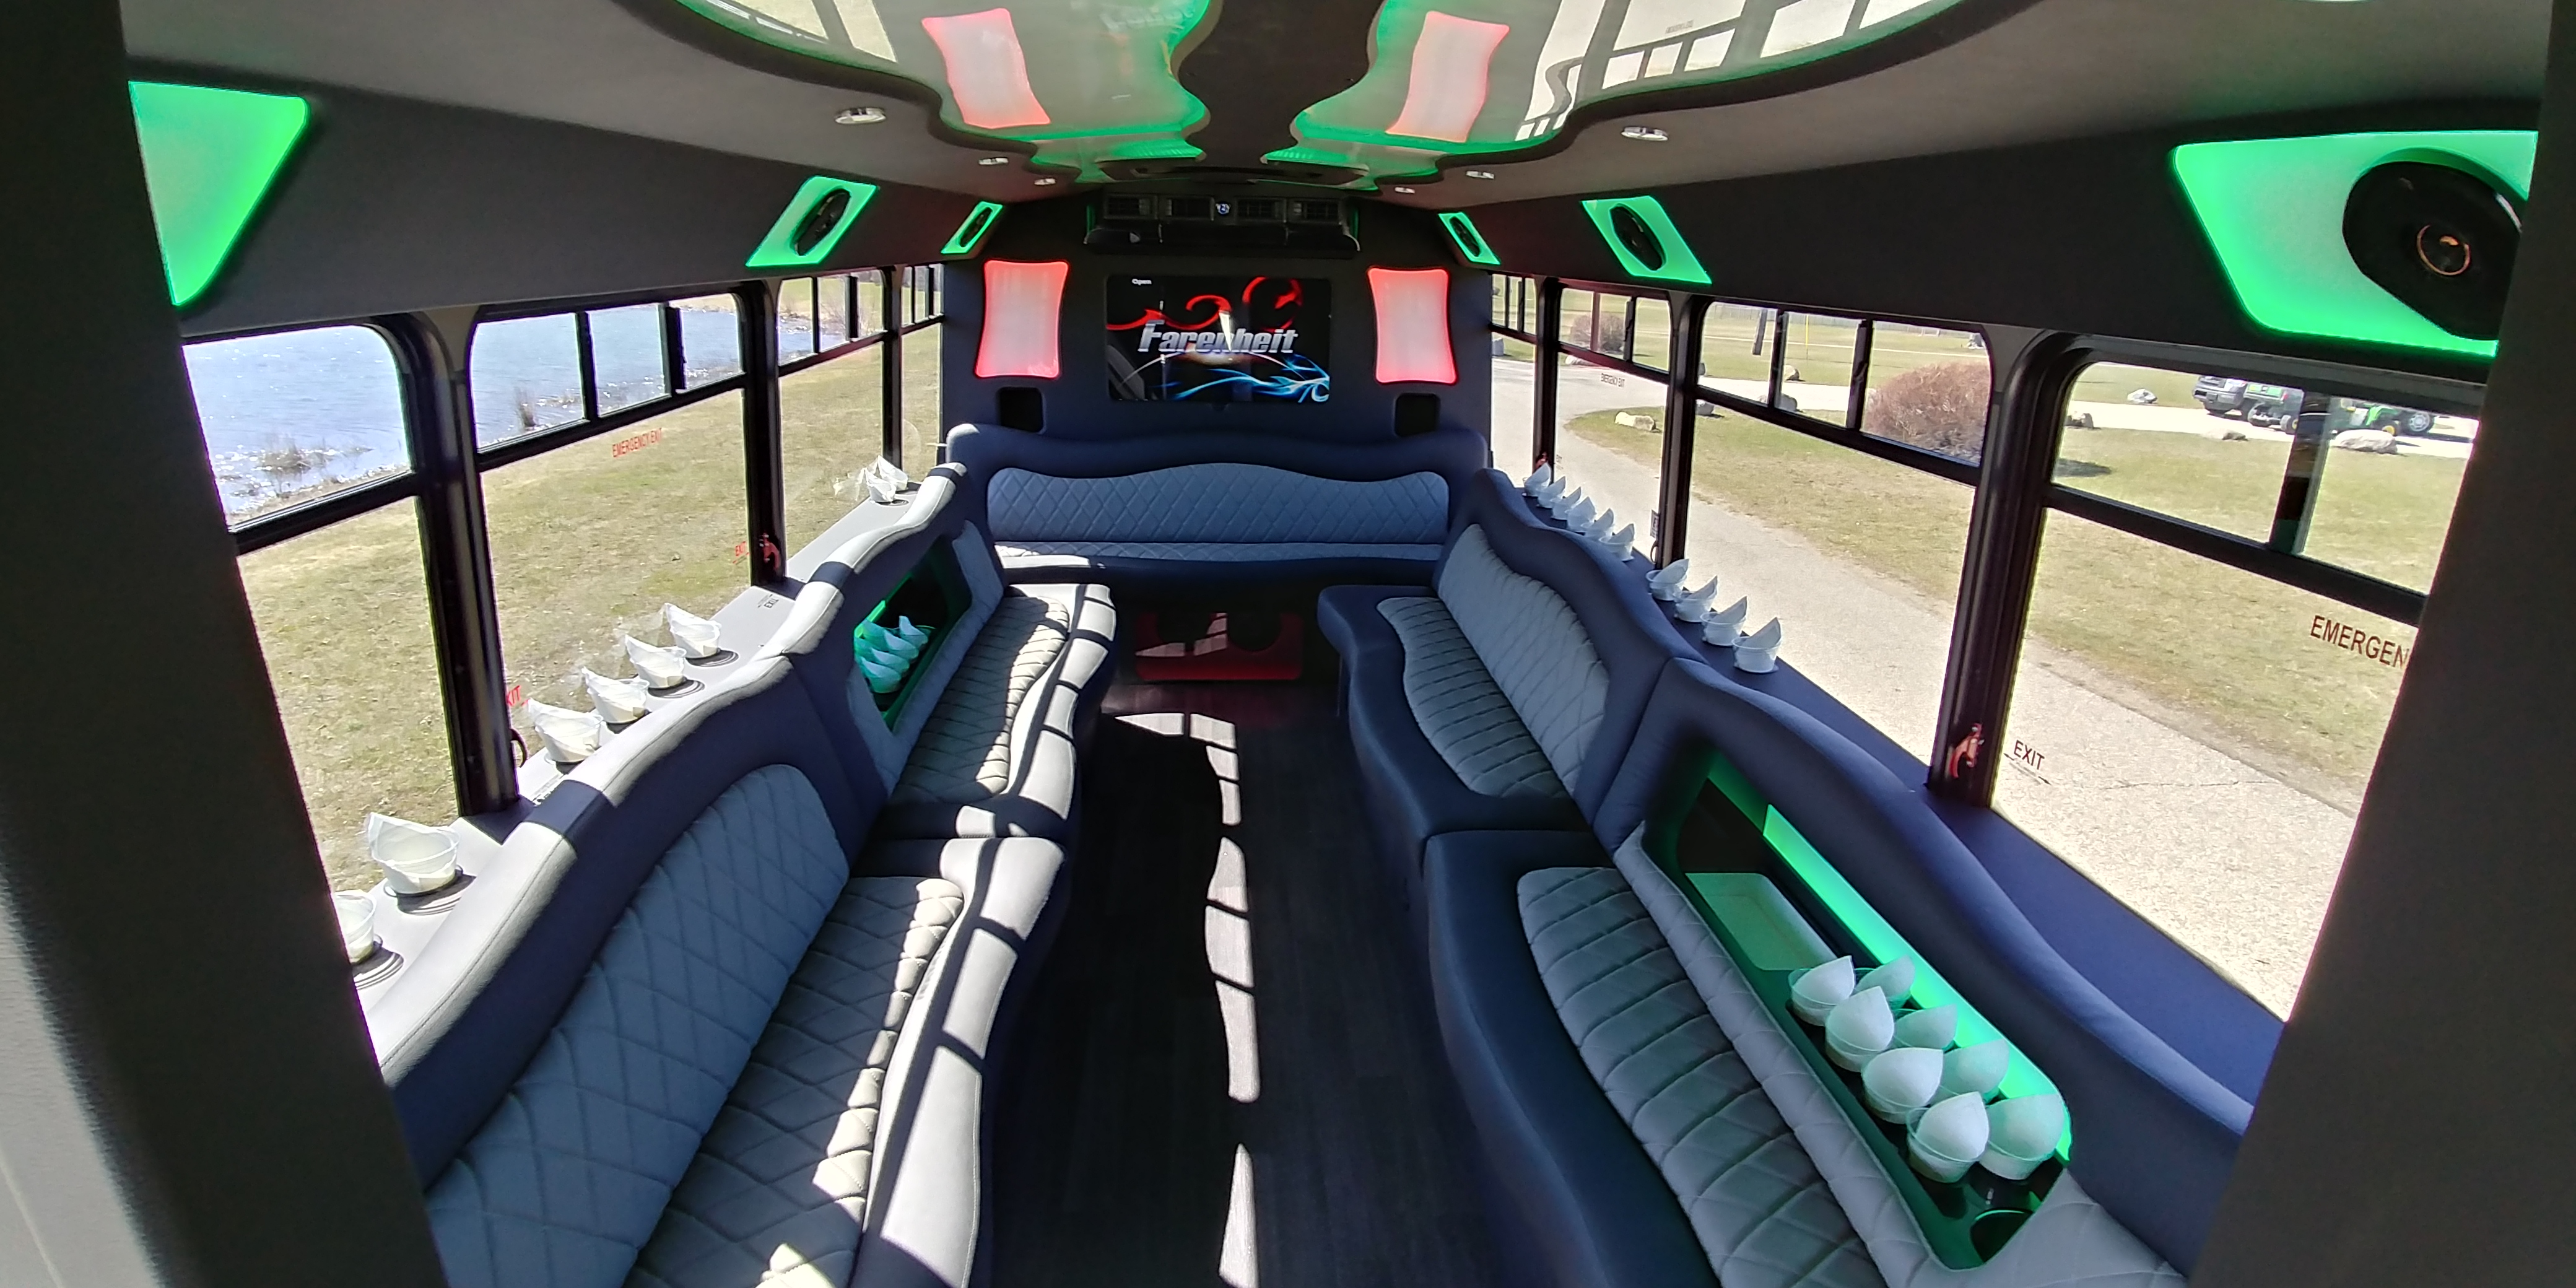 18 Passenger Luxury Limo Bus Interior